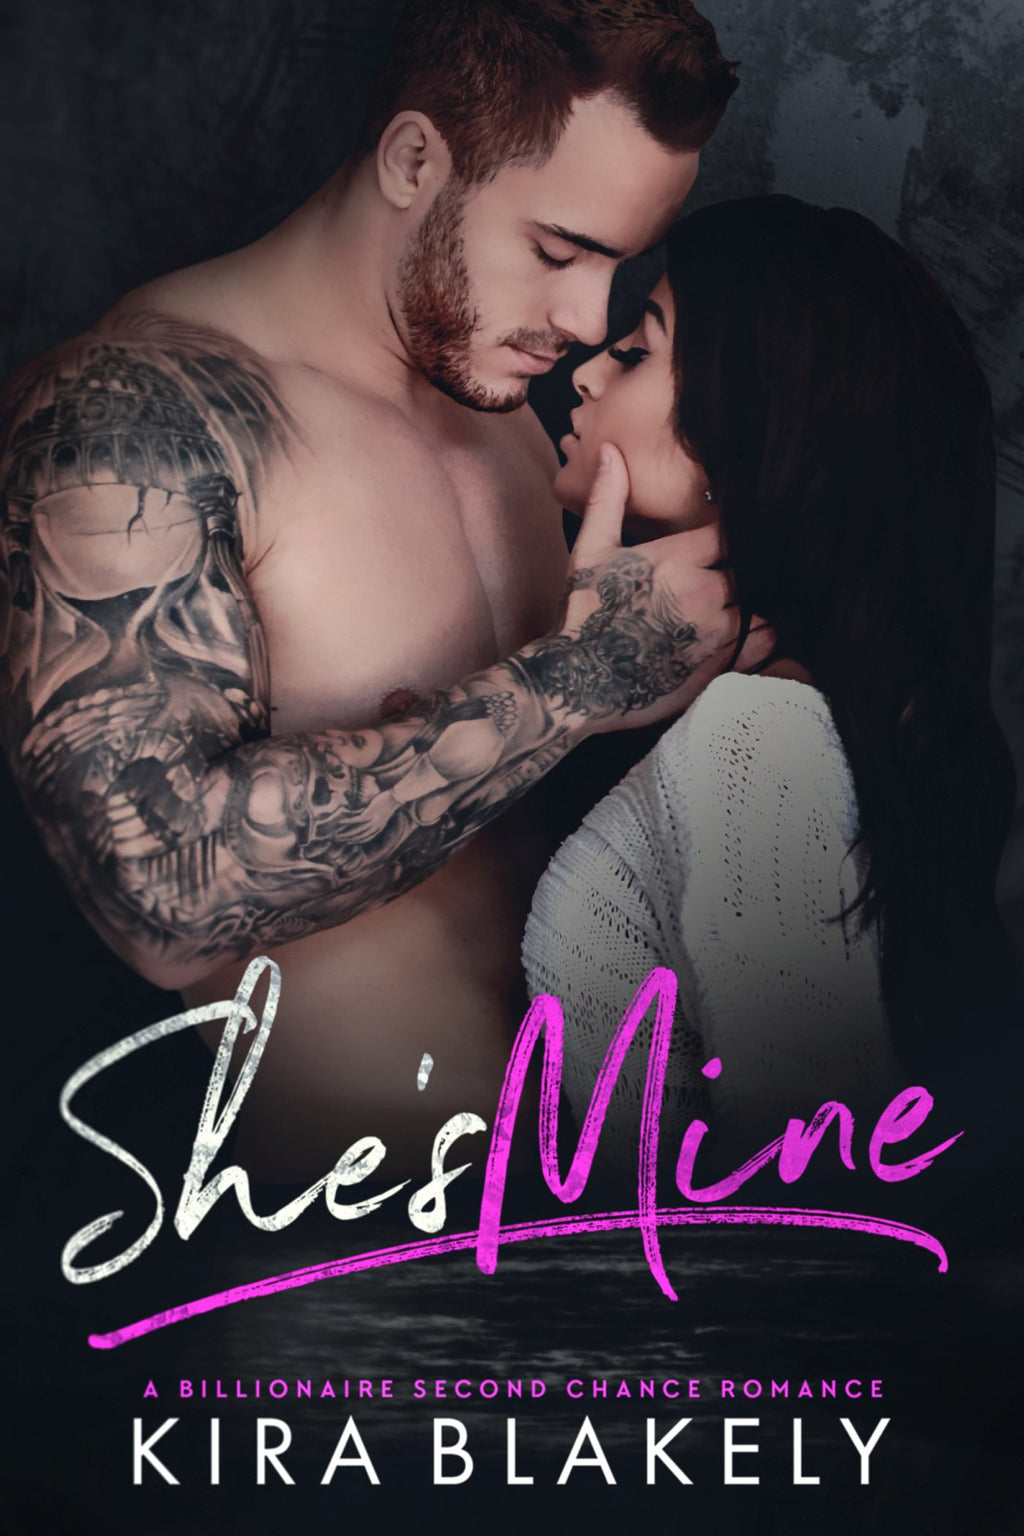 She's Mine - Author Kira Blakely